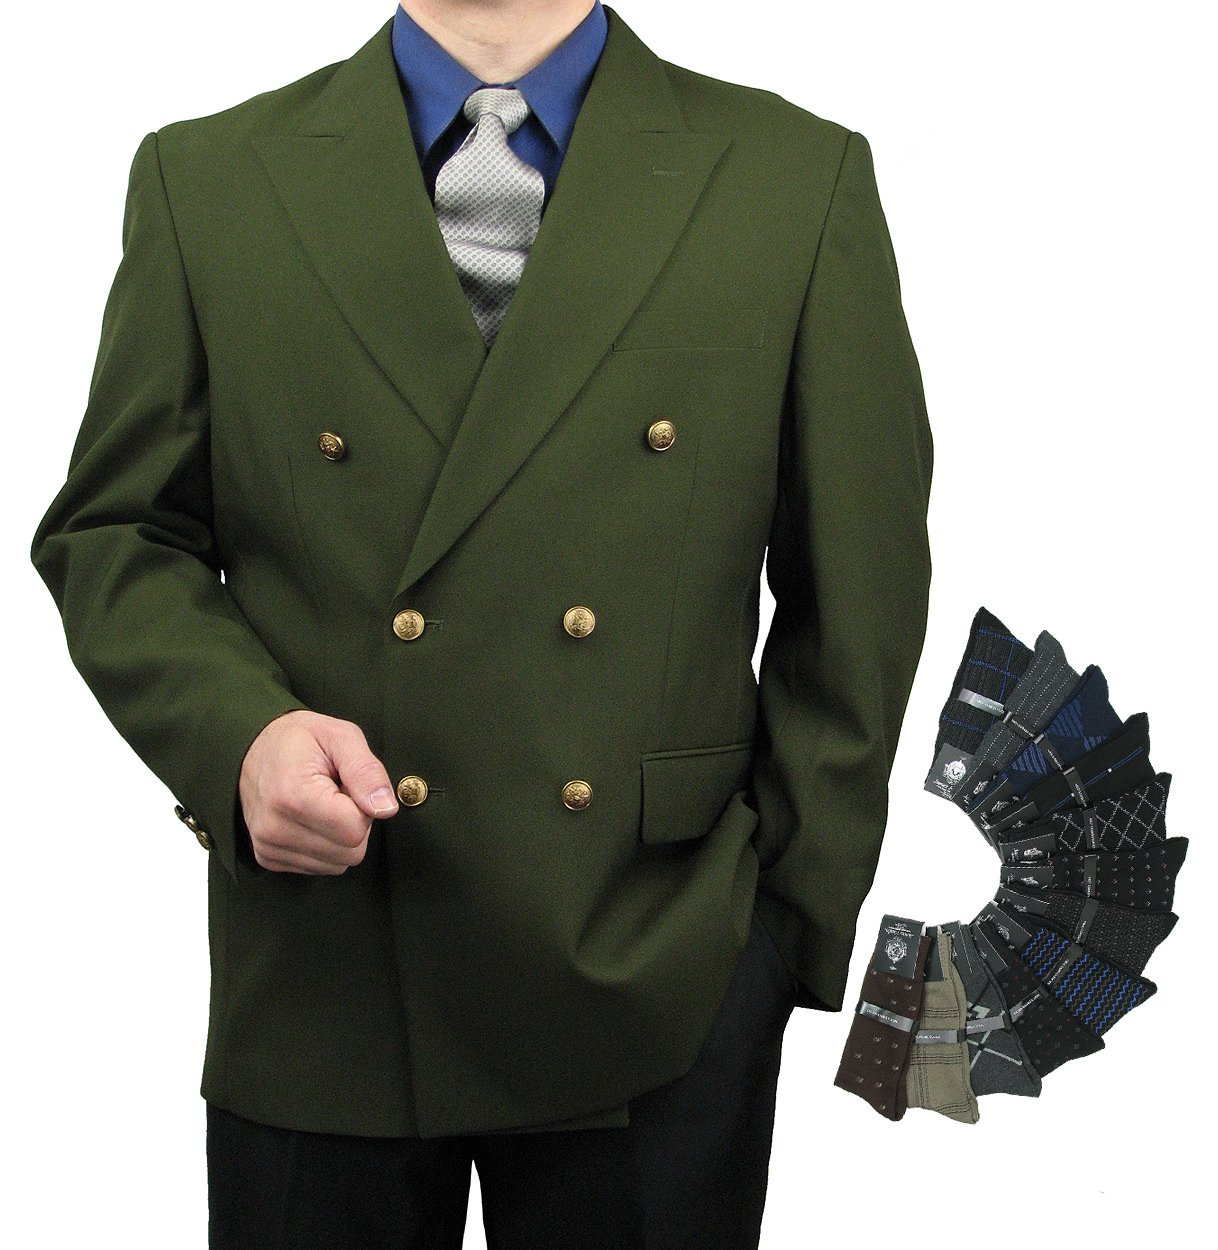 Men's Classic Fit Double-Breasted Blazer Jacket Sports Coat w/One Pair Of Dress Socks - Olive 52L